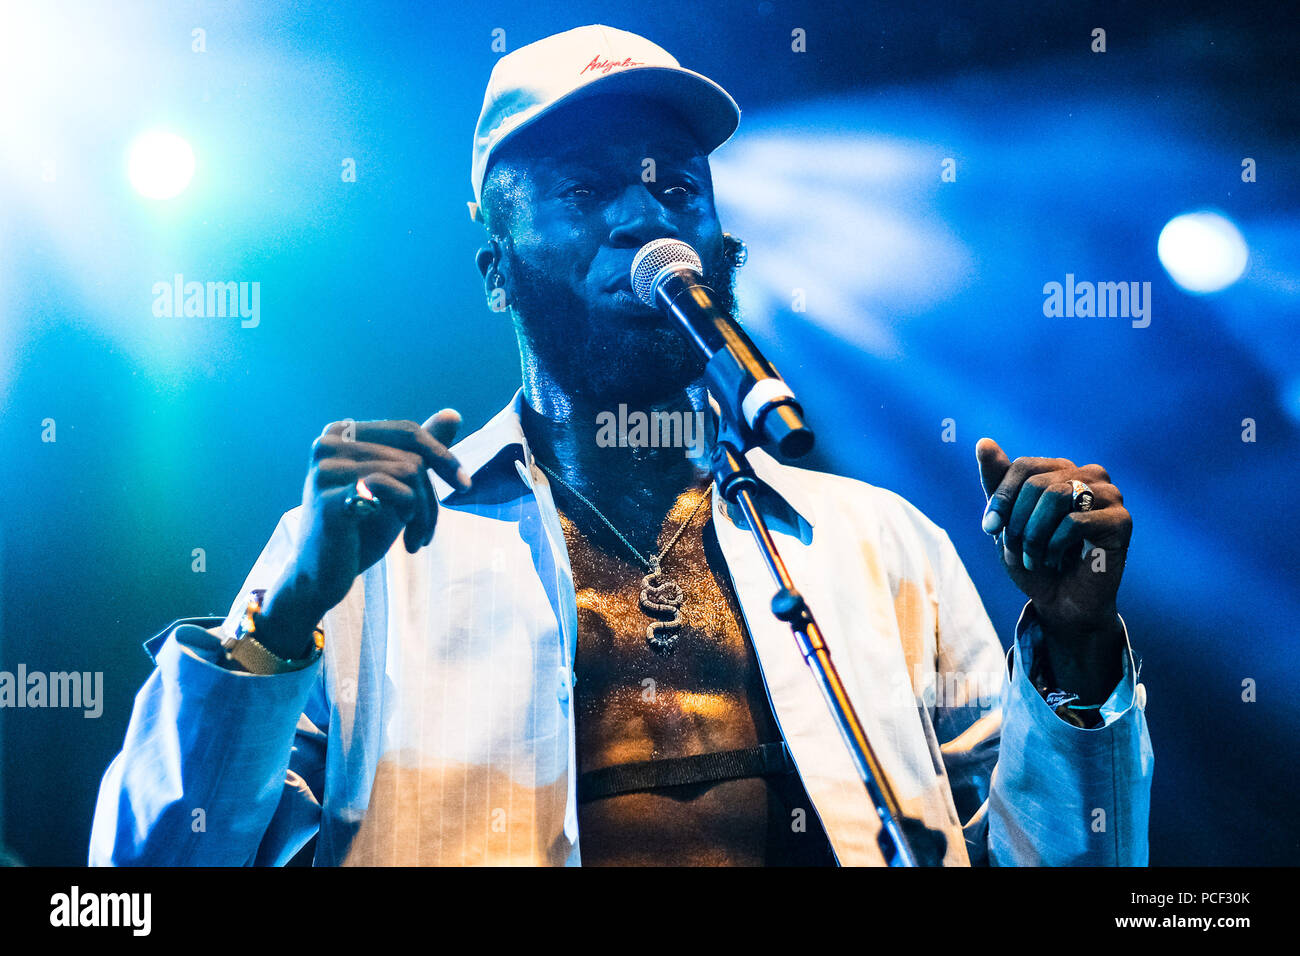 Kojey Radical onstage at WOMAD on Thursday 26 July 2017 held at Charlton Park, Wiltshire . Pictured: Kojey Radical is a British rapper/spoken word artist from London. - Stock Image